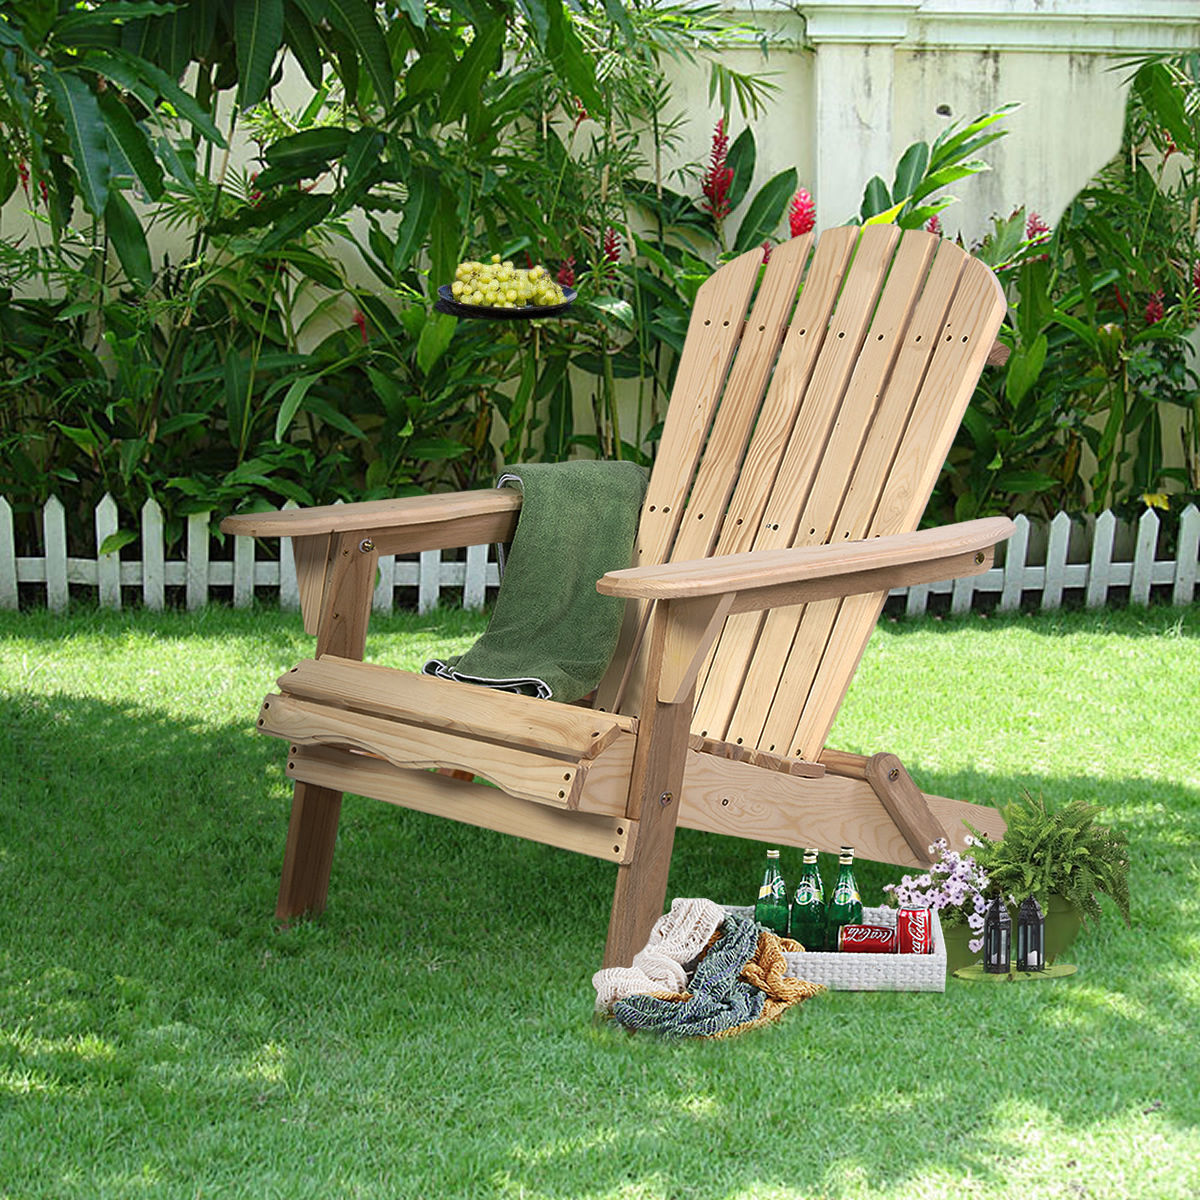 Garden Furniture - Outdoor Adirondack Wood Chair Folding Patio Lawn Garden Furniture W/Plans